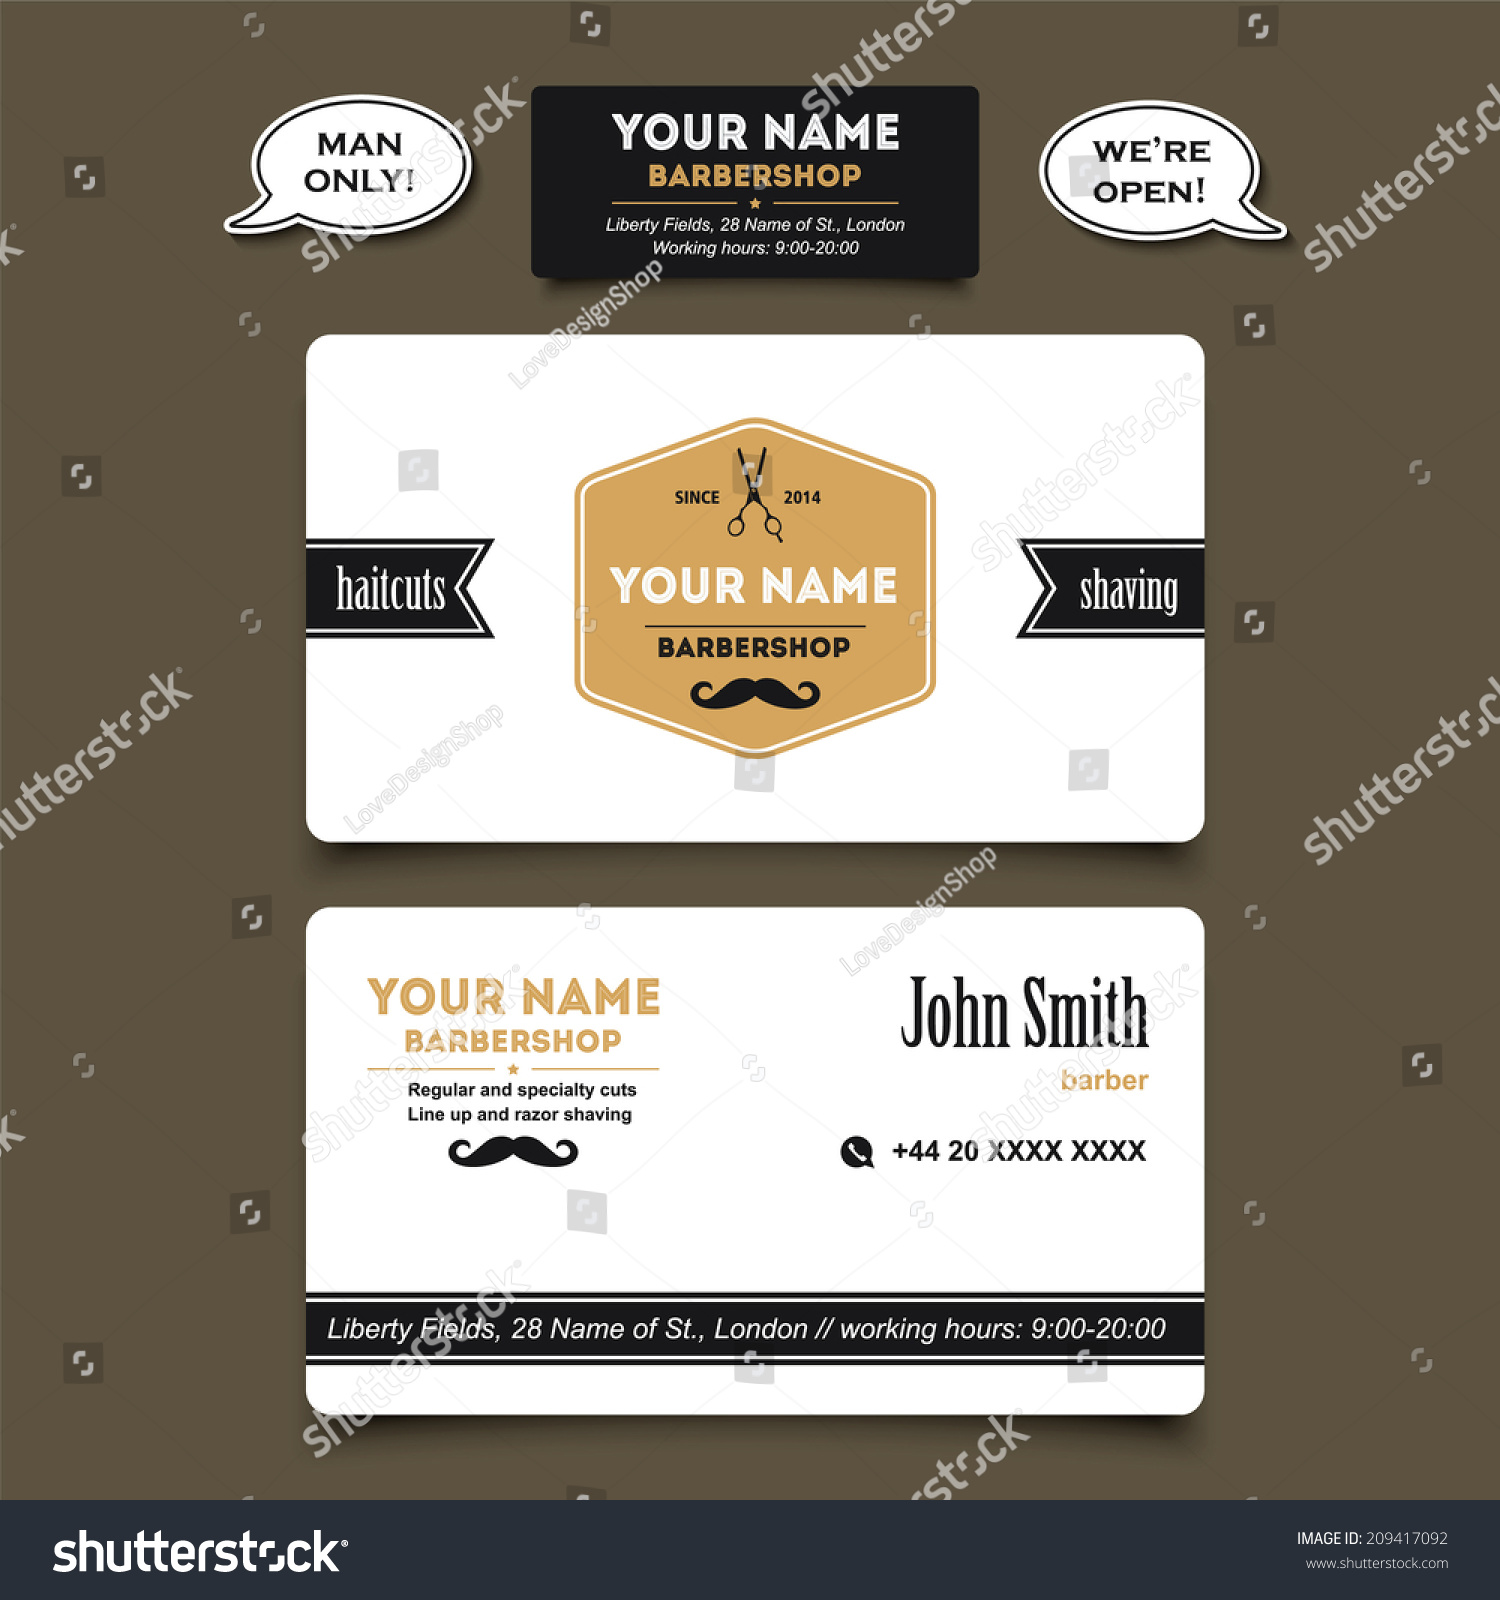 Hair salon barber shop business card stock vector 2018 209417092 hair salon barber shop business card design vector template wajeb Image collections